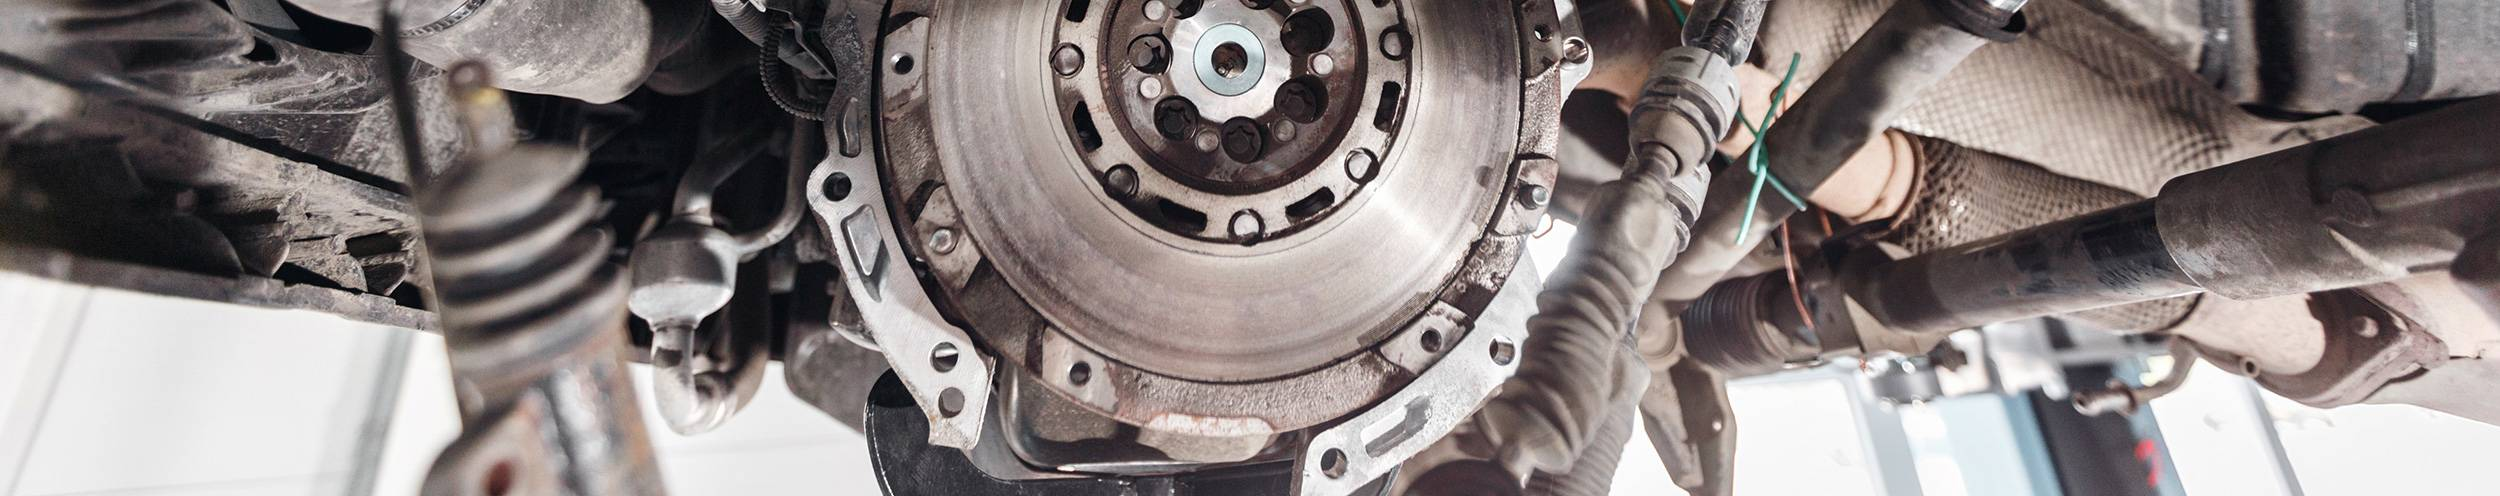 close up of clutch disk underneath car in garage